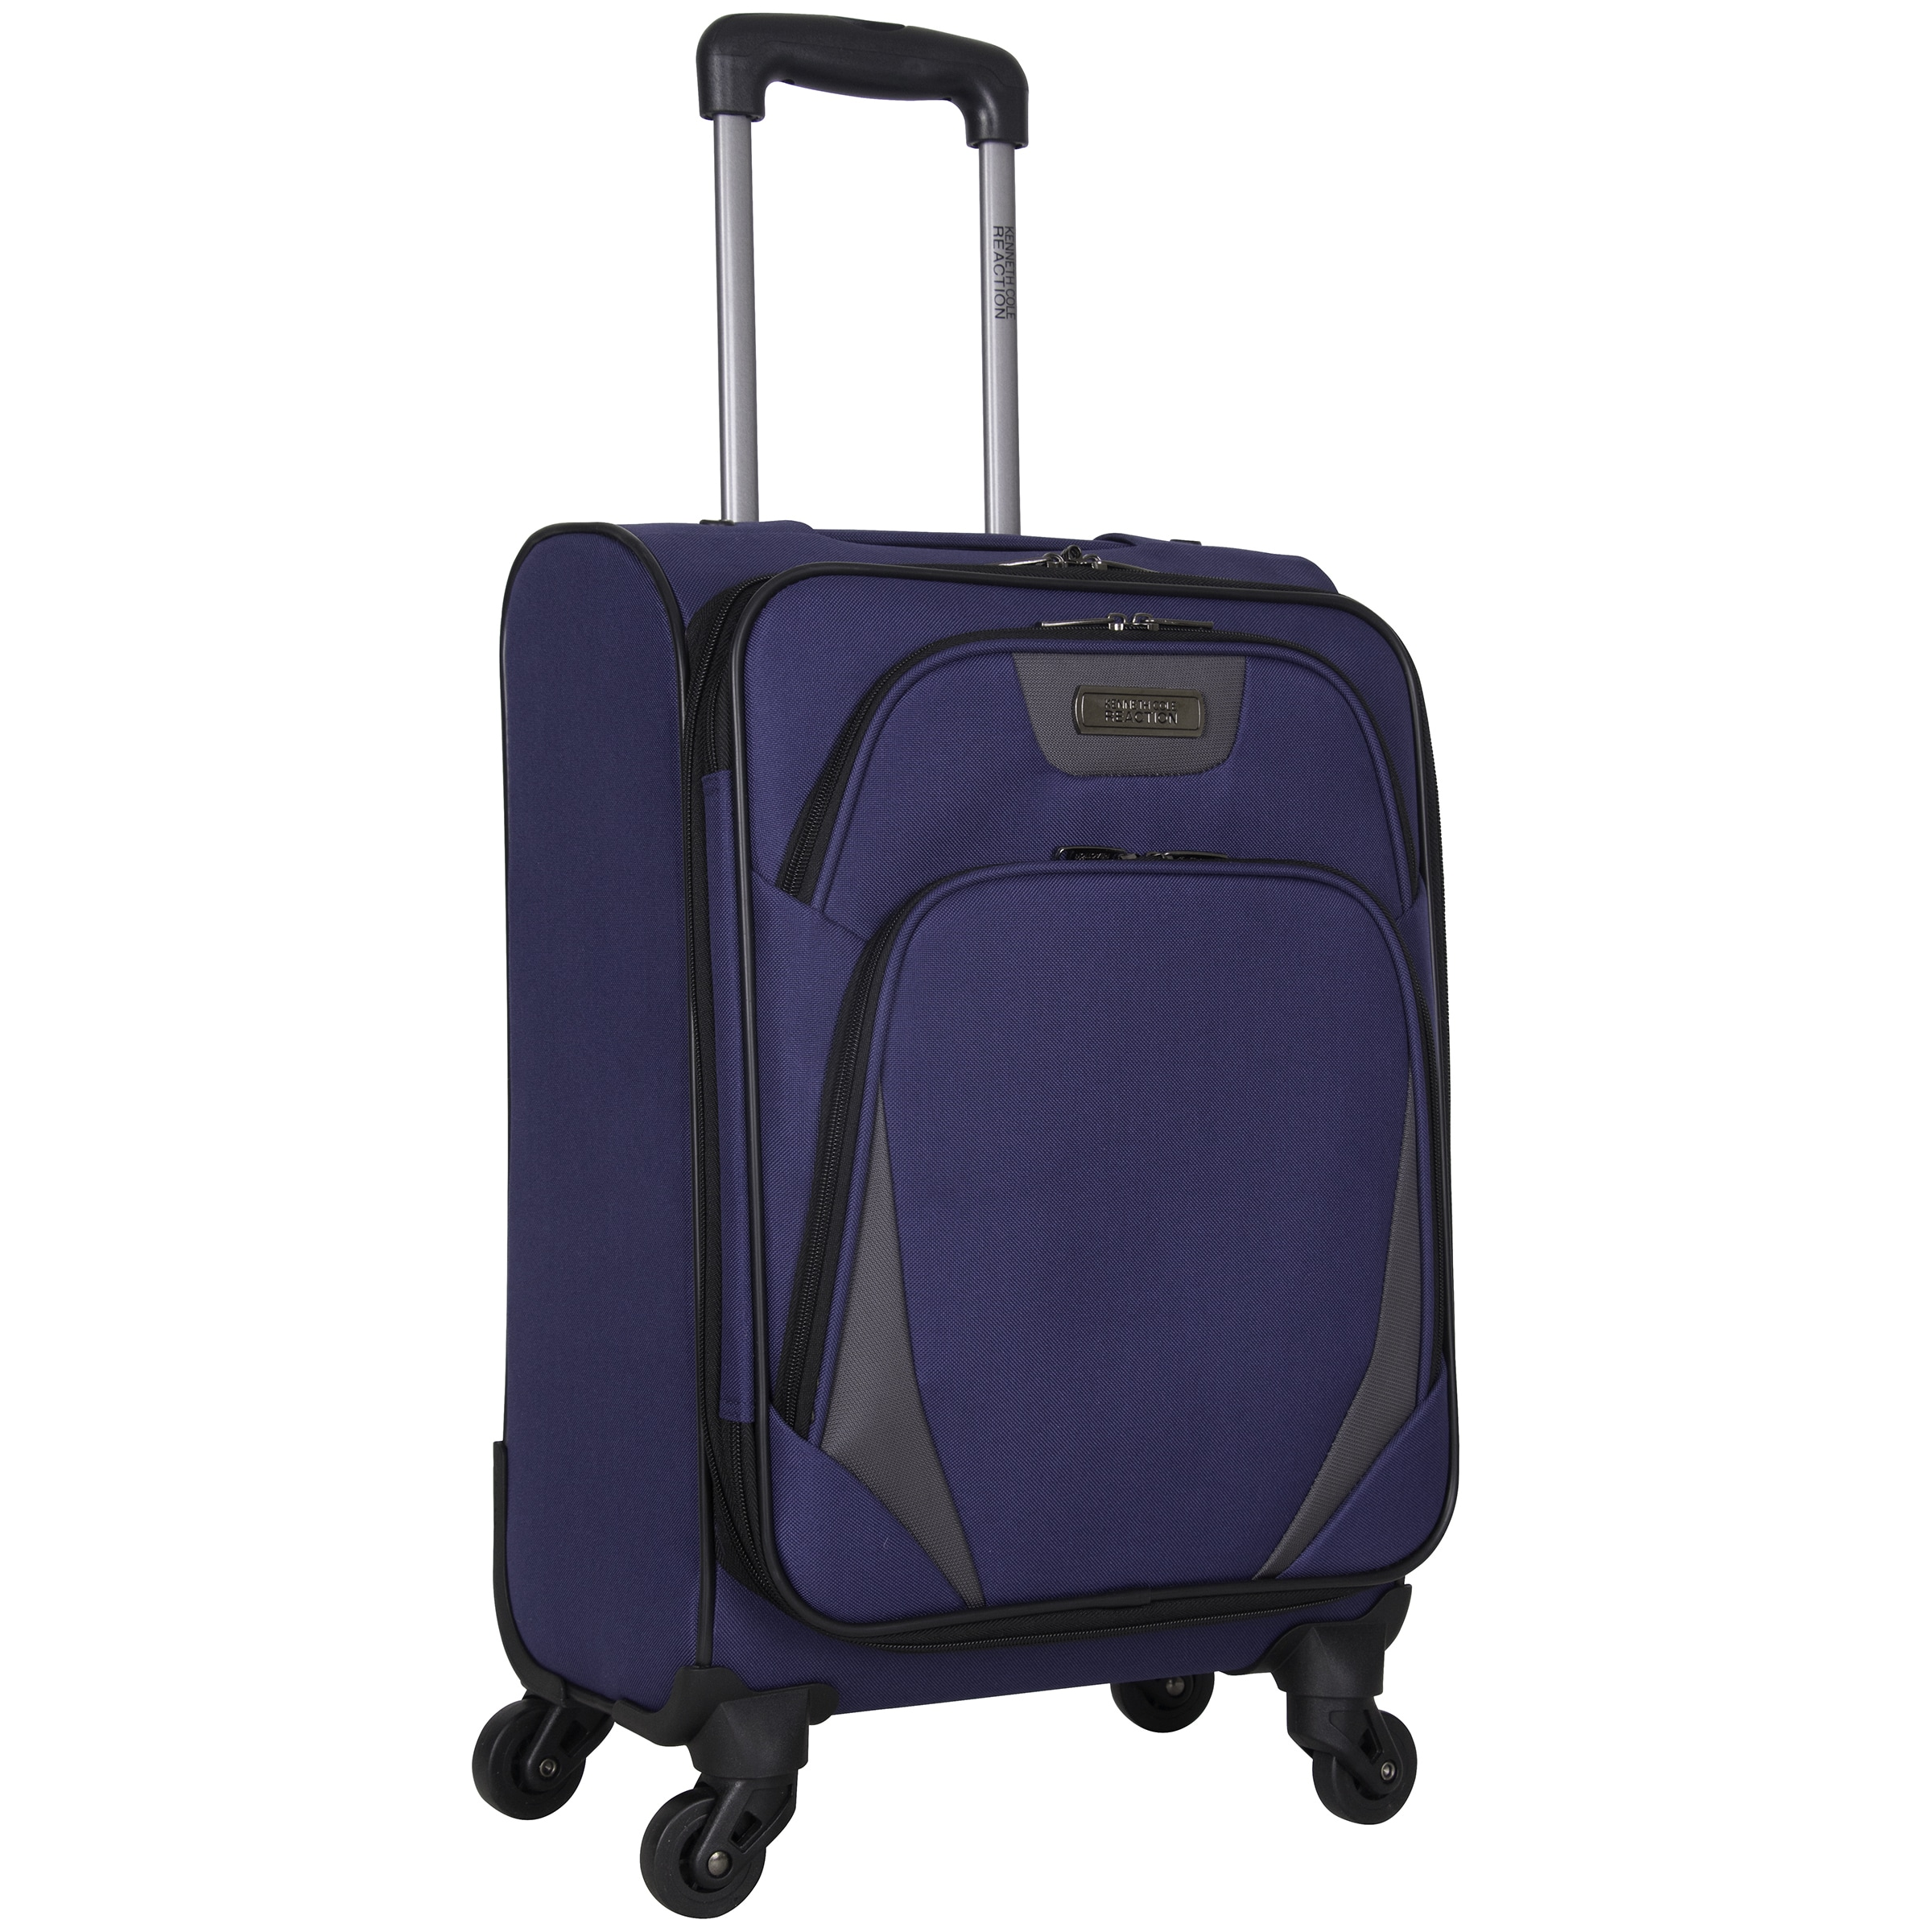 f126fe67d Shop Kenneth Cole Reaction 'Going Places' 20-inch Lightweight 4-wheel  Spinner Carry-on Suitcase - Free Shipping Today - Overstock - 16654235